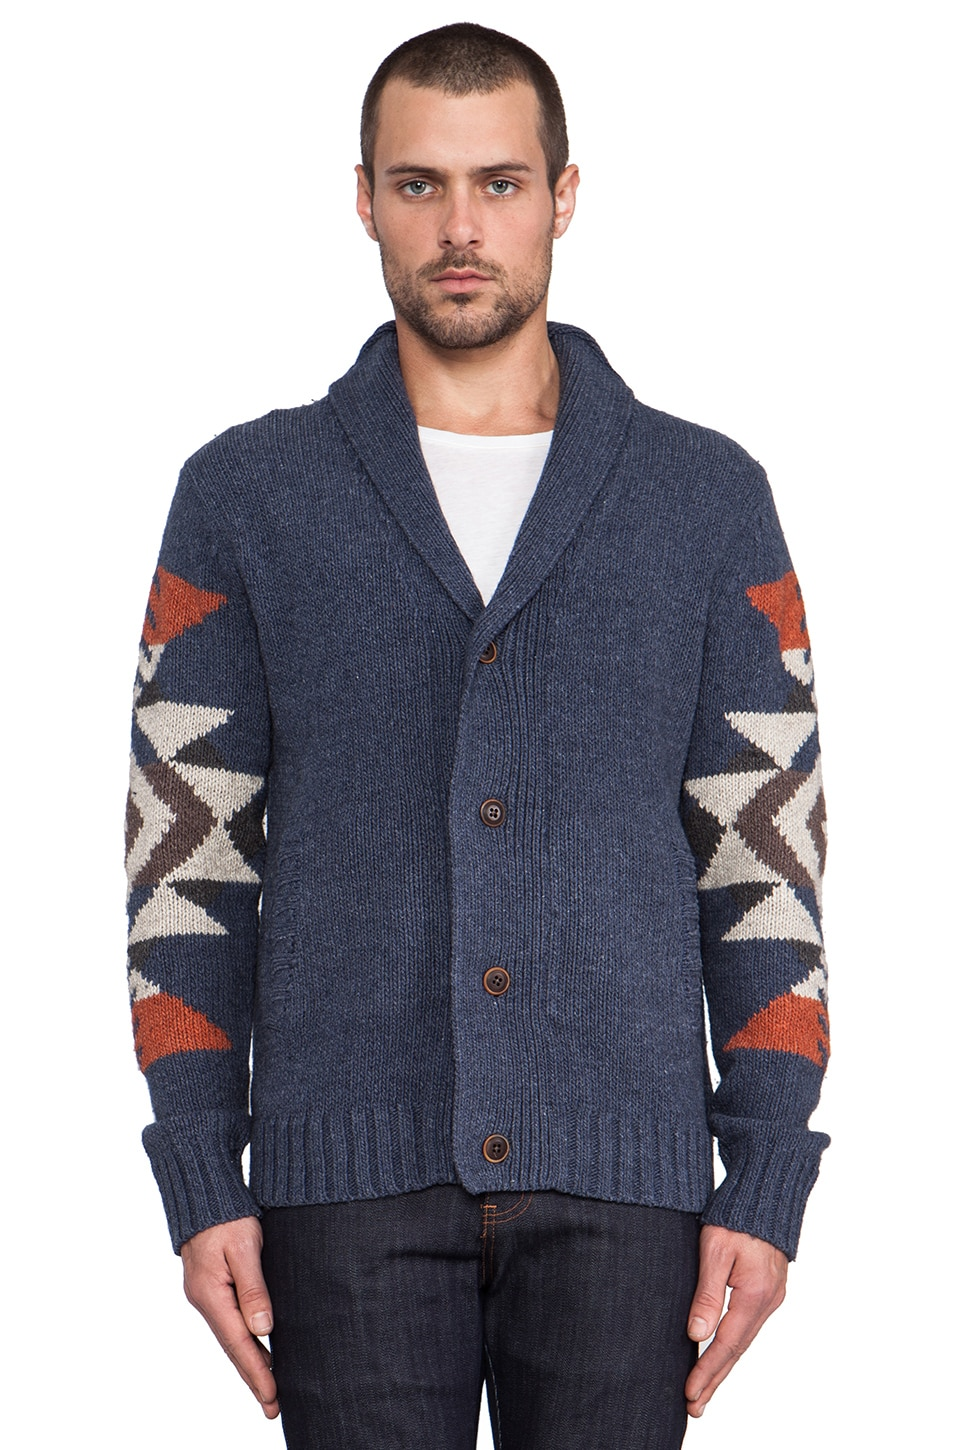 life/after/denim Iroquois Cardigan in Heather Navy